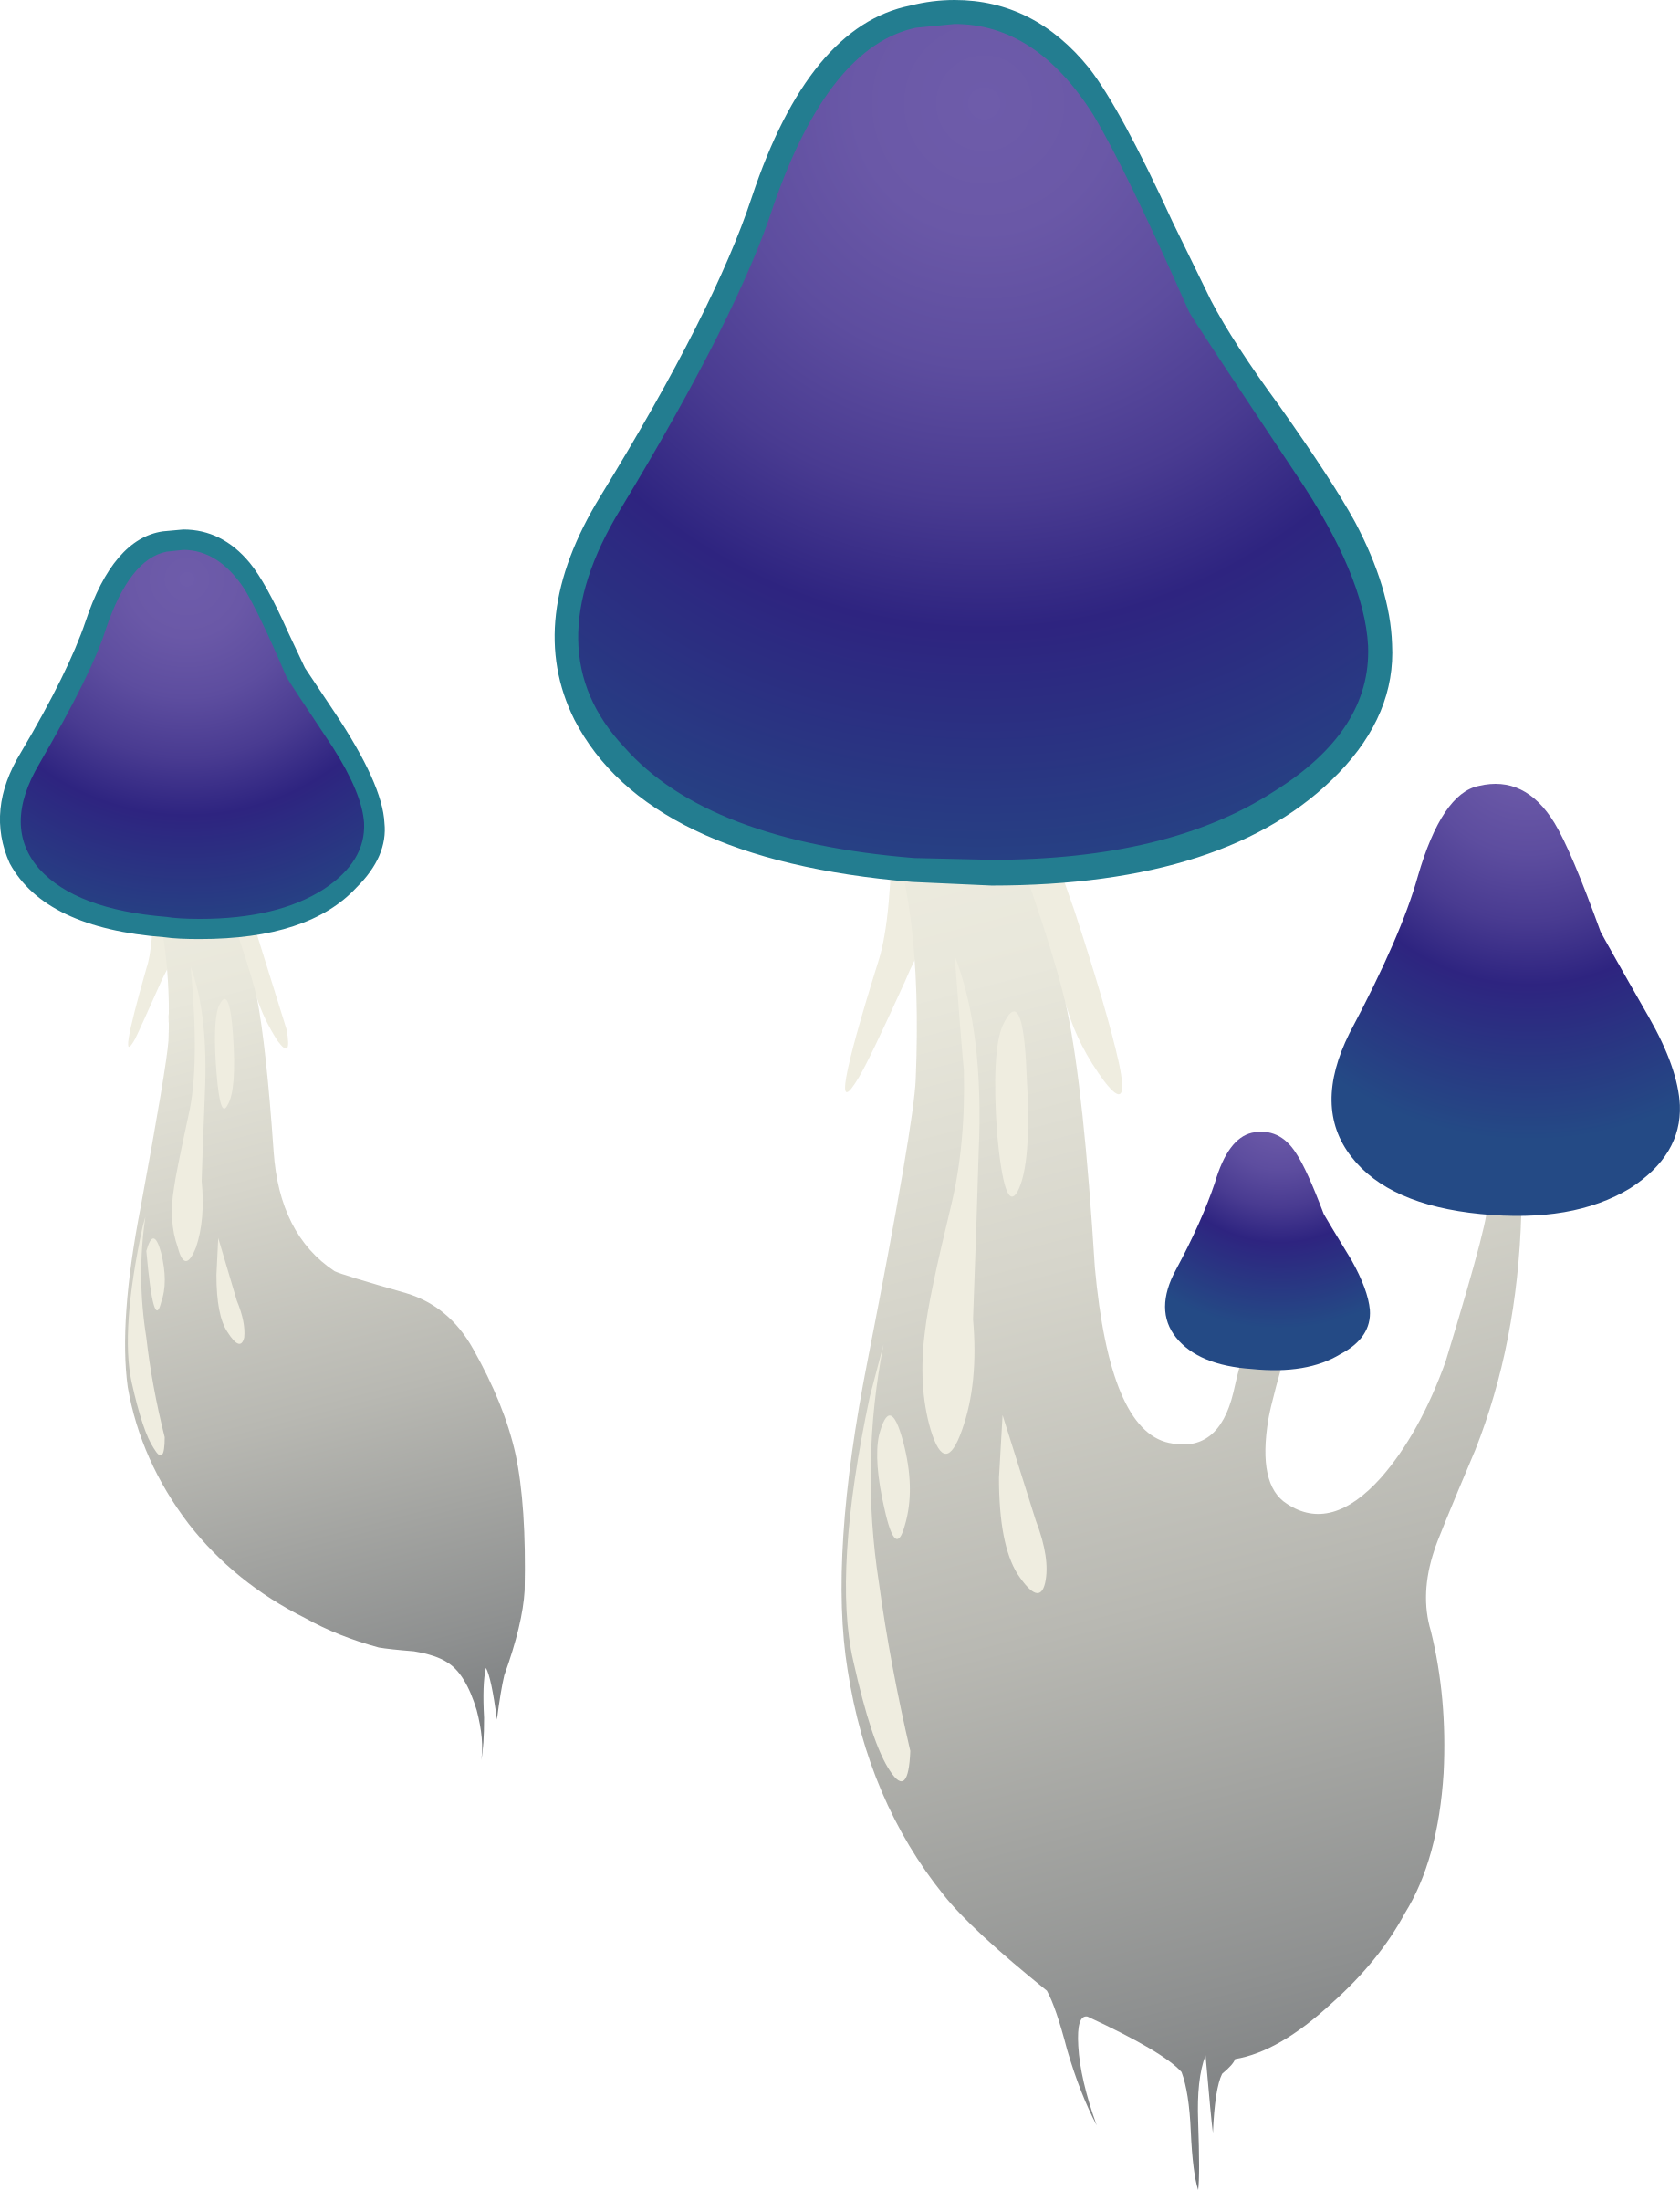 Ilmenskie Purple Mushroom 1 by glitch